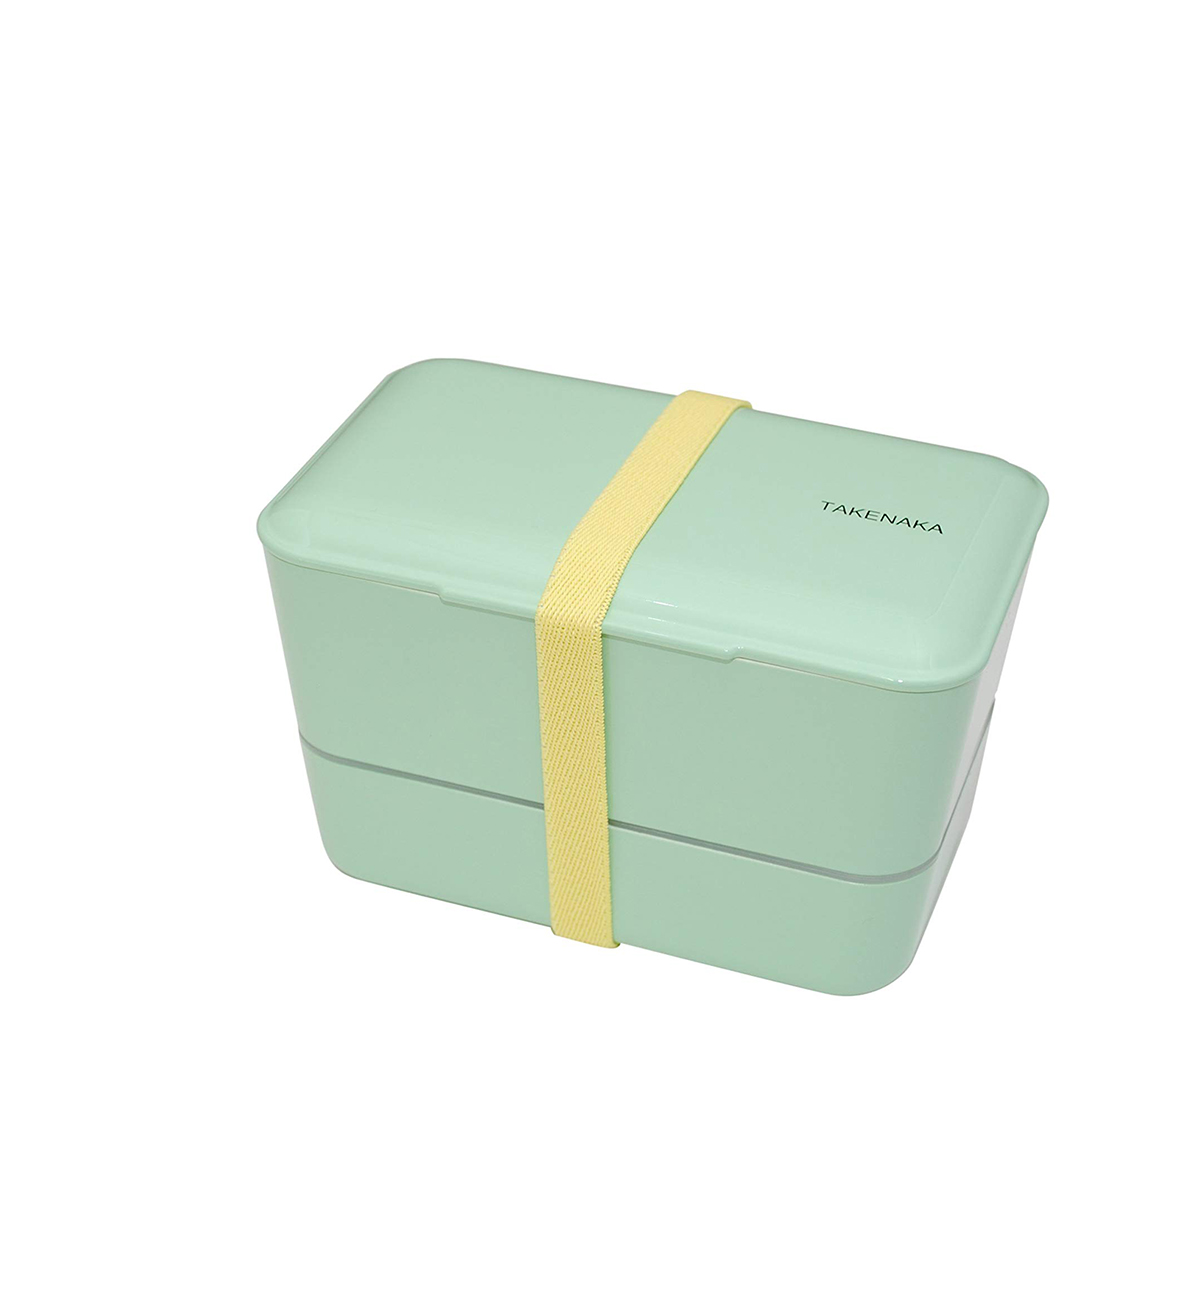 Lunch Bags for Women, Mint Green Bento Box